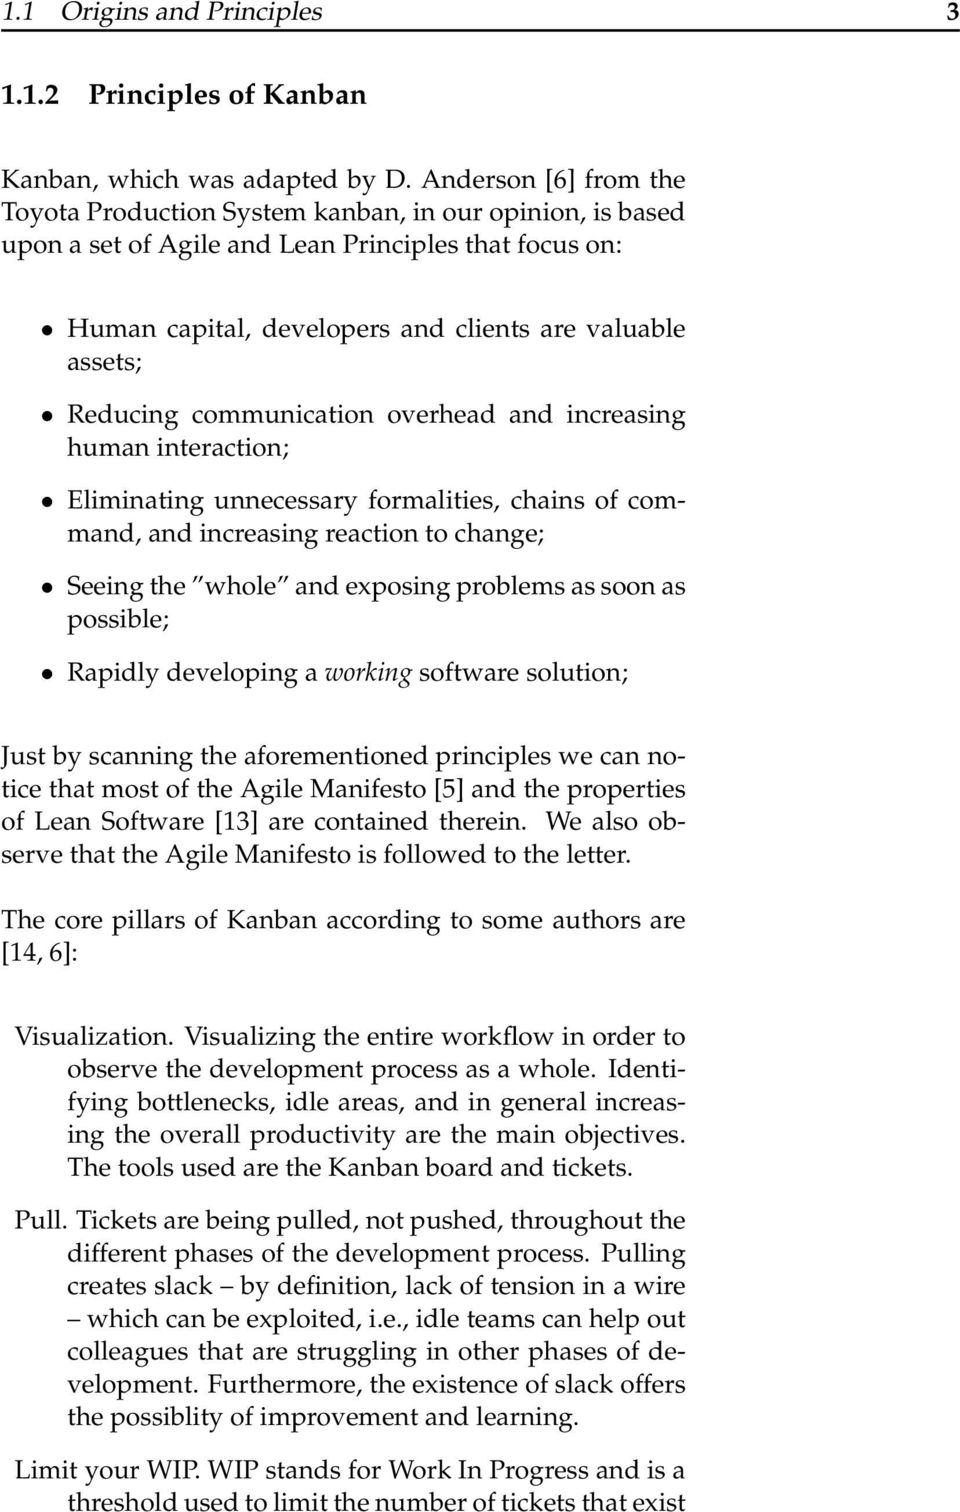 Kanban in a nutshell  Chapter Origins and Principles - PDF